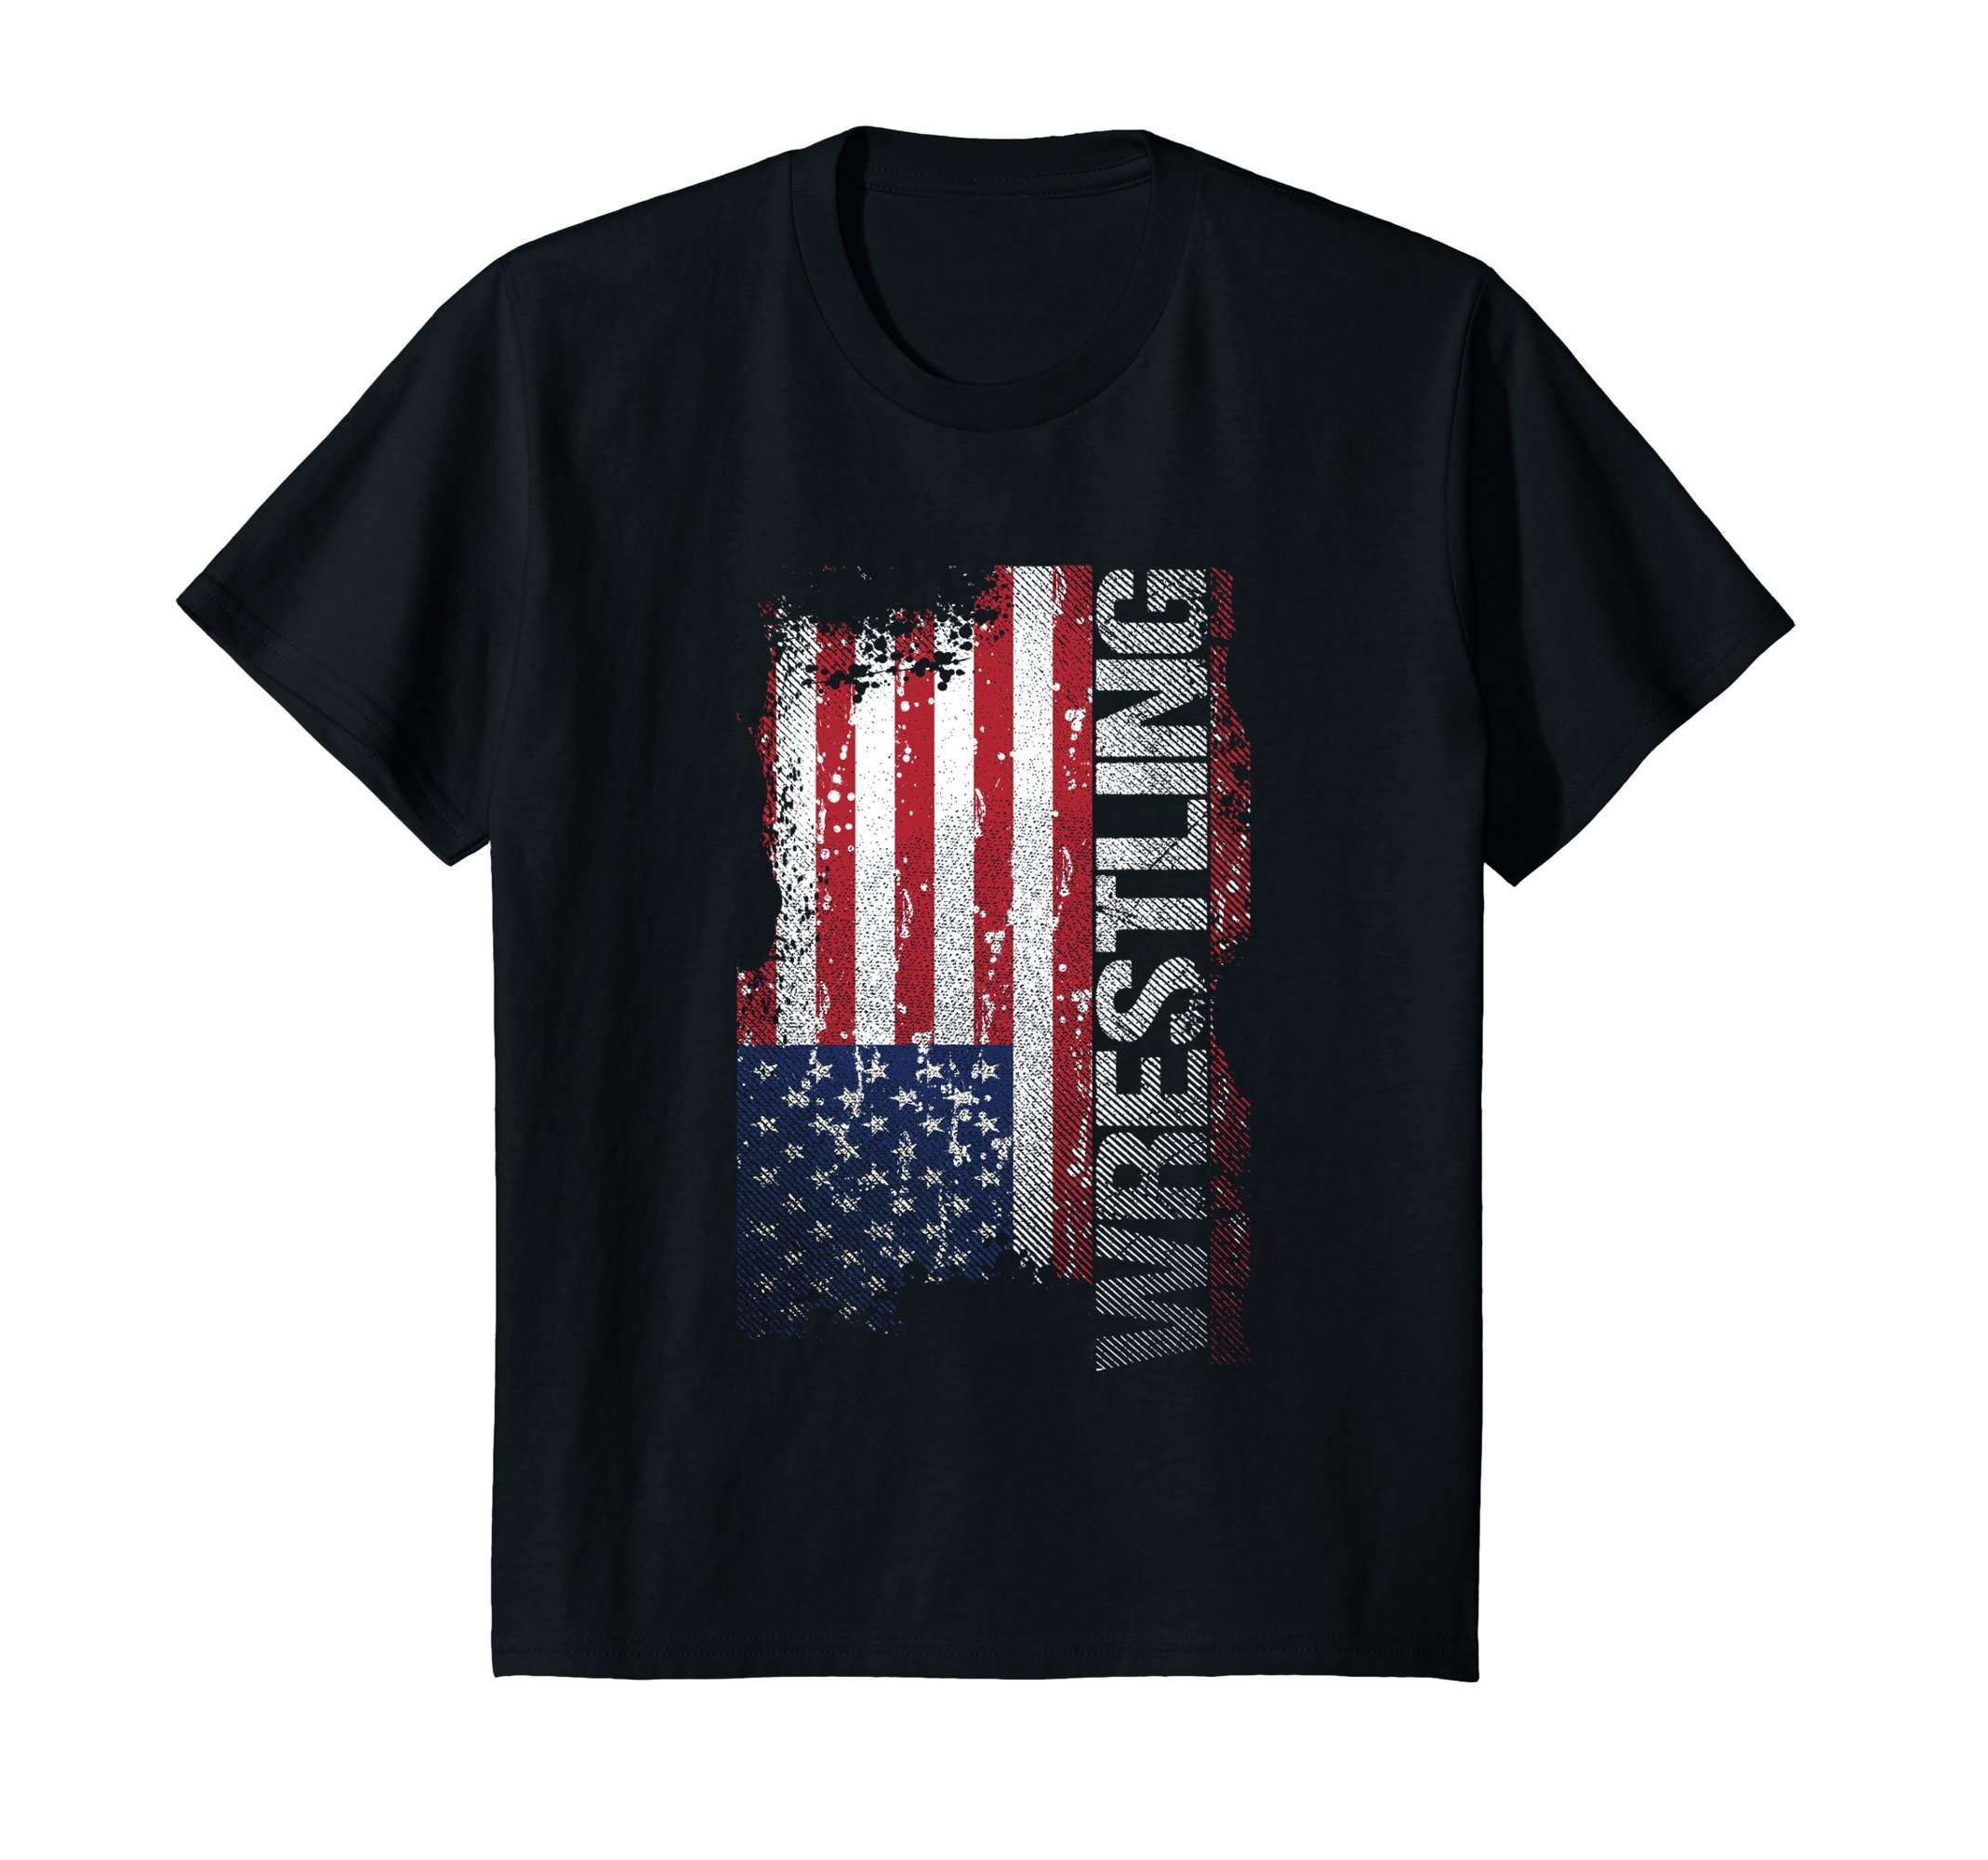 Kids USA Flag folkstyle Wrestling T-Shirt, College Wrestlers Tee 12 Black by Zerobubble folkstyle Wrestling T-Shirt